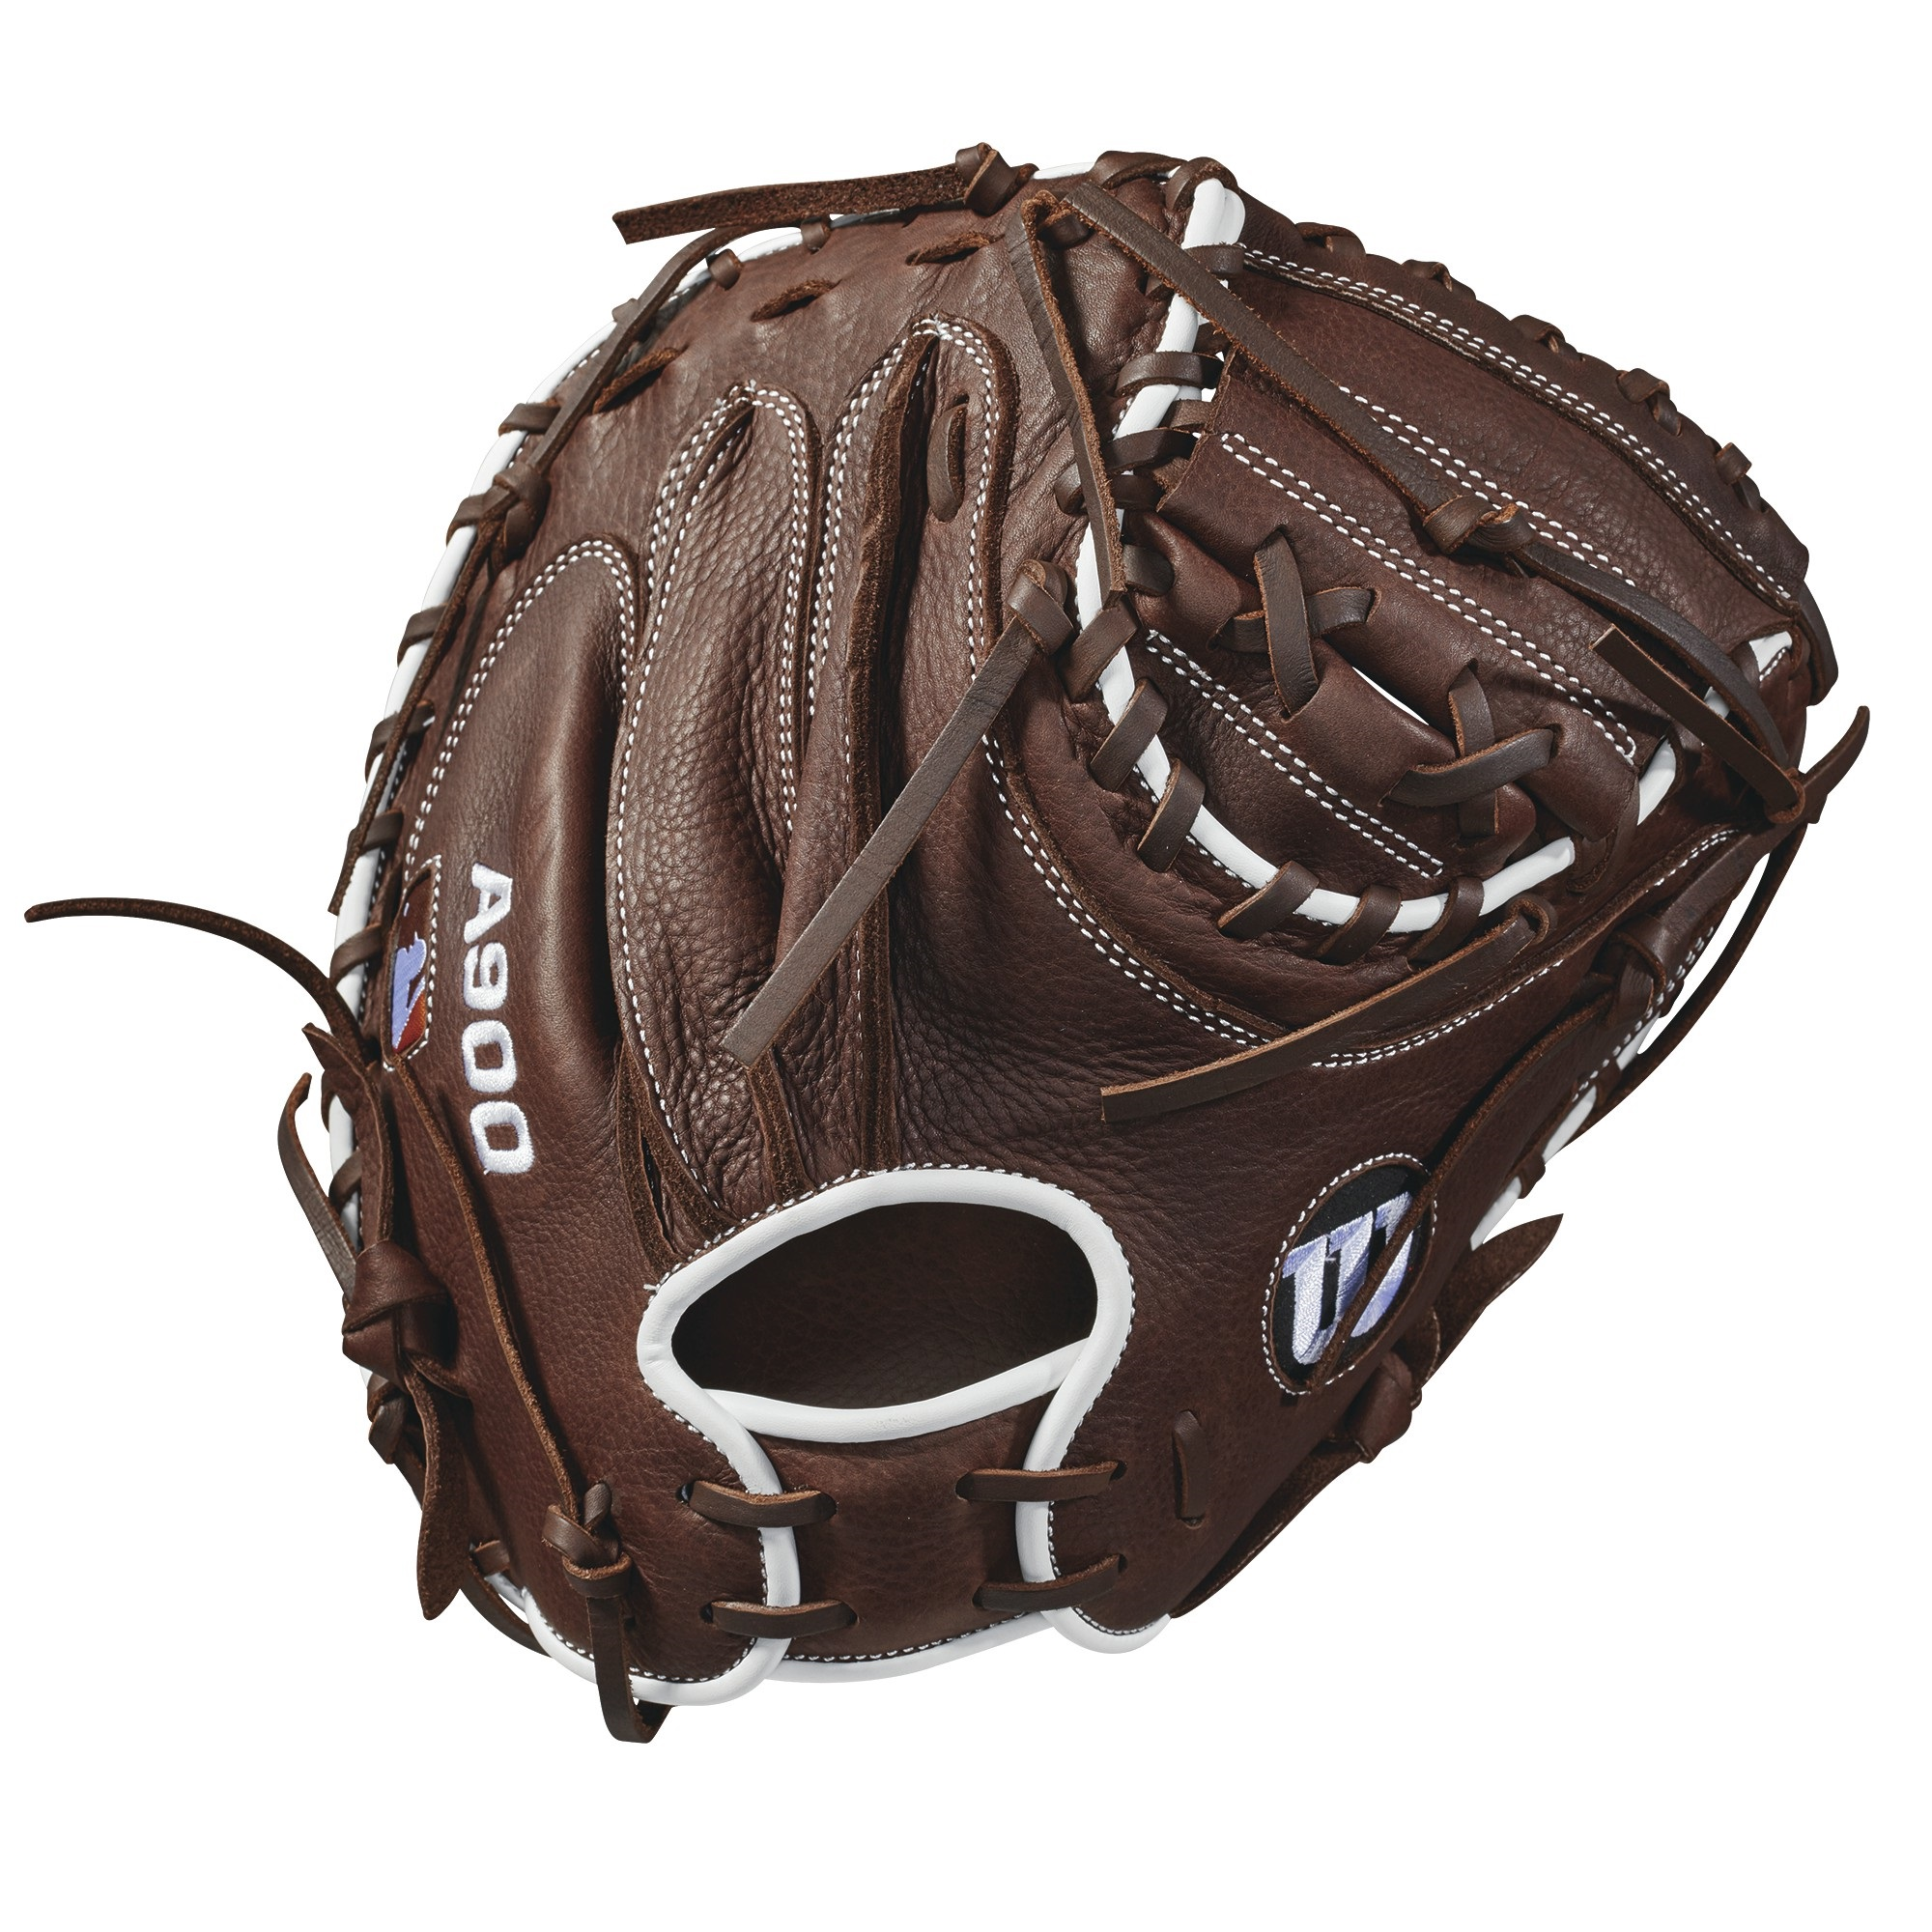 "Wilson A900 34"" Catcher's Mitt Right Hand Throw by Wilson Sporting Goods"